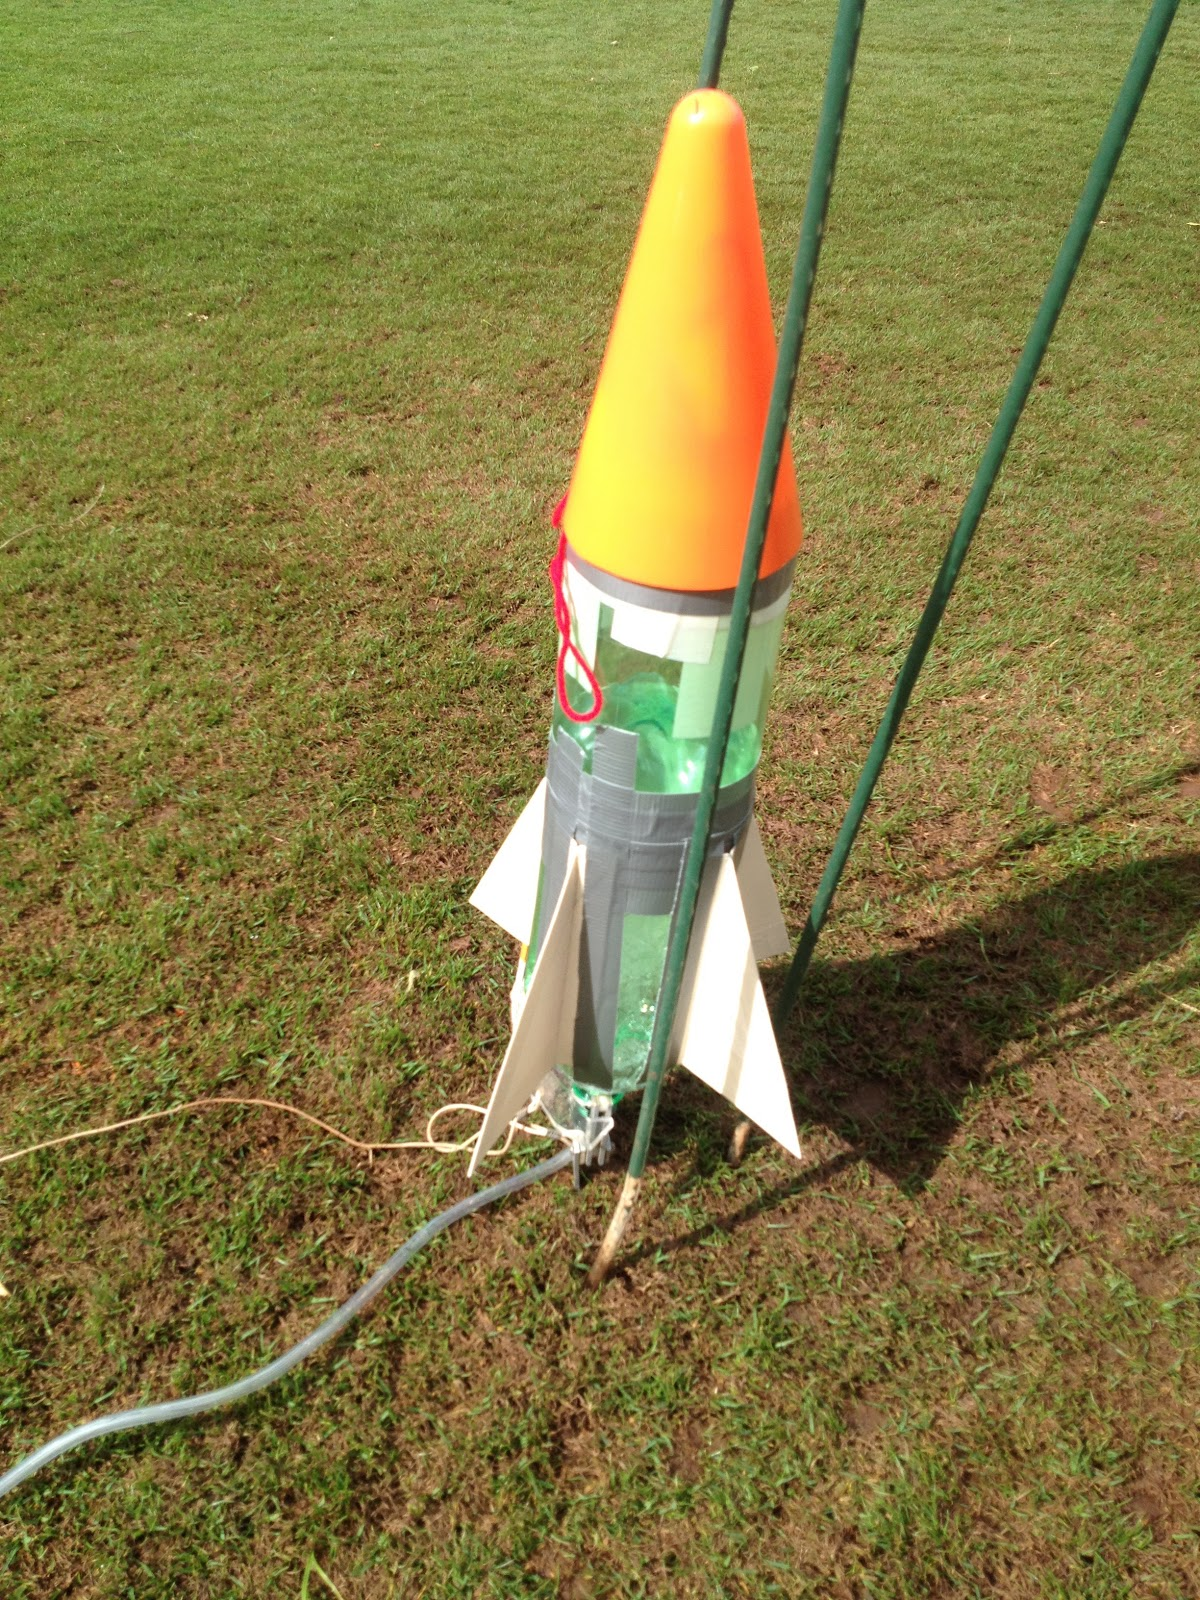 water rocket launcher plans pdf